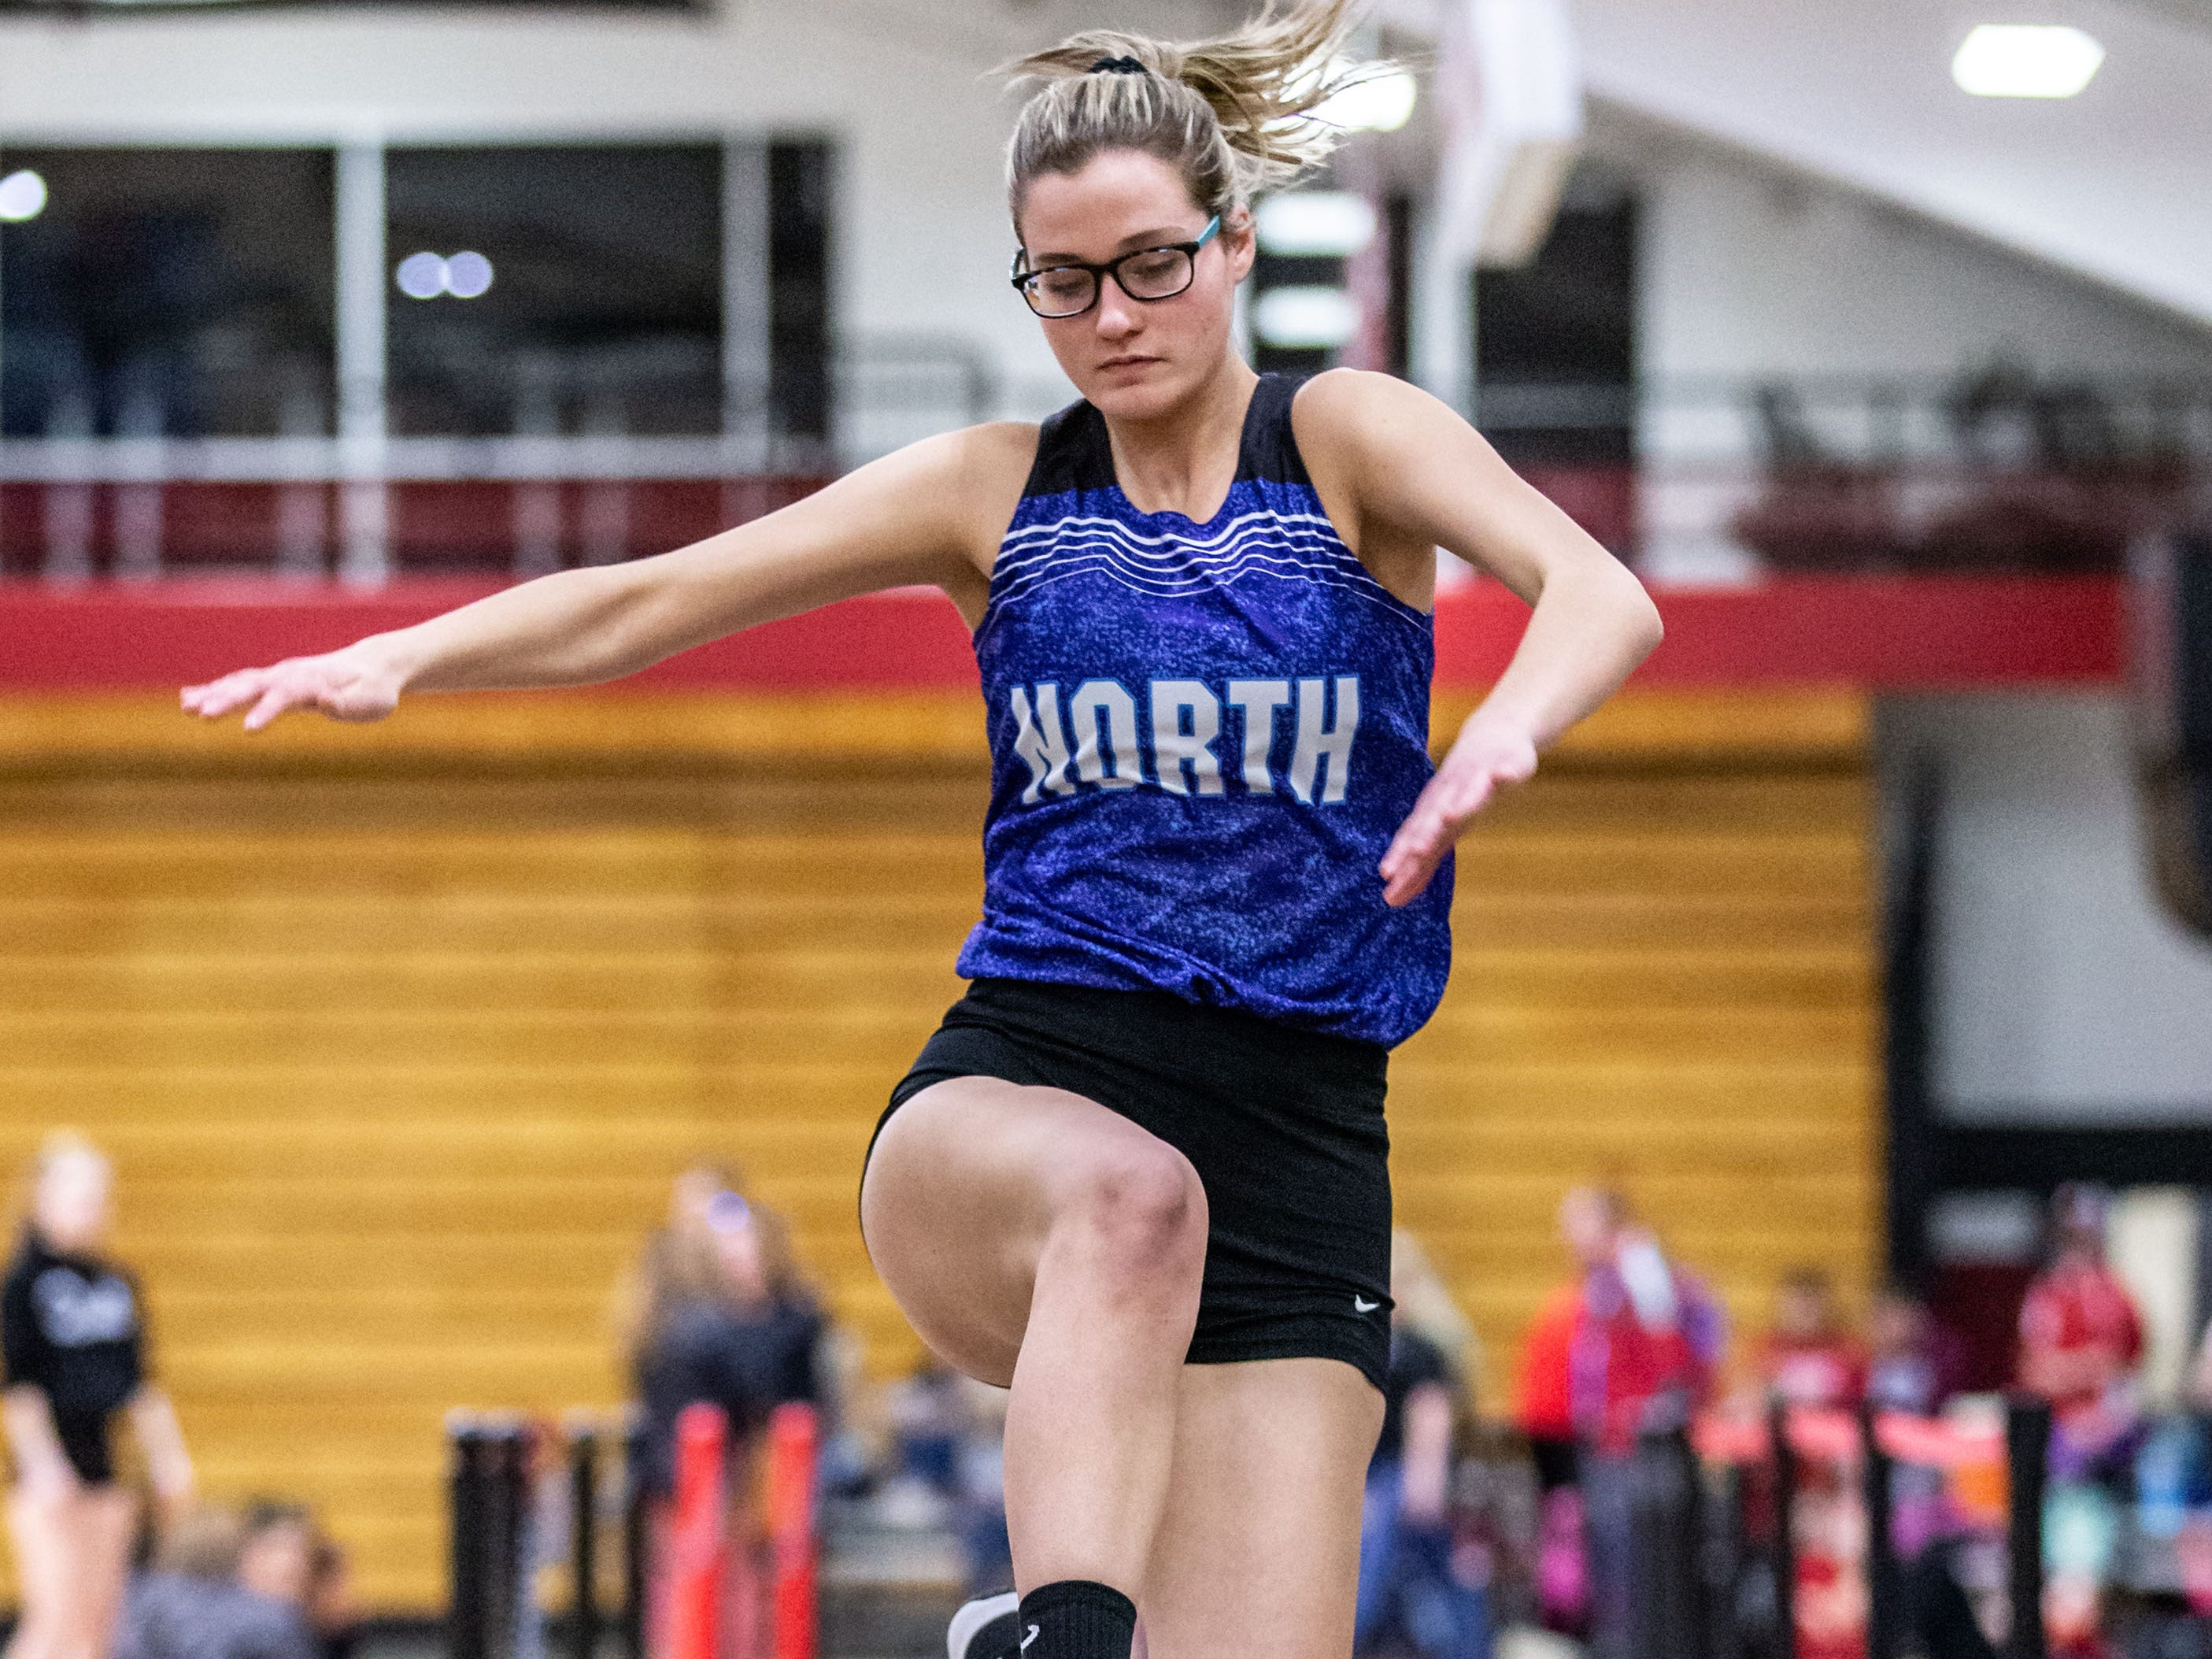 Waukesha North's Sydney Demerath competes in the long jump at the Peter Rempe Cardinal Relays hosted by Waukesha South on Thursday, March 21, 2019.